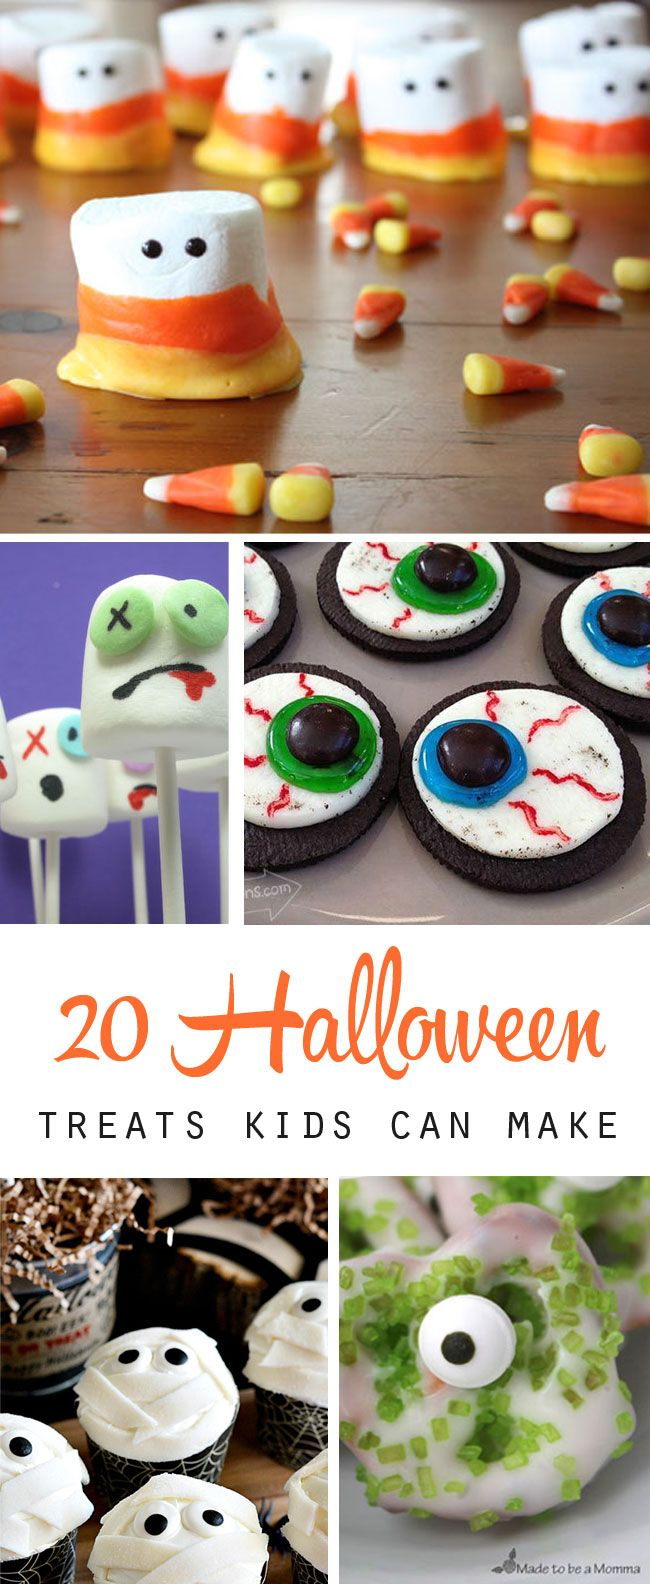 20 fun Halloween treats to make with your kids - fun and easy!